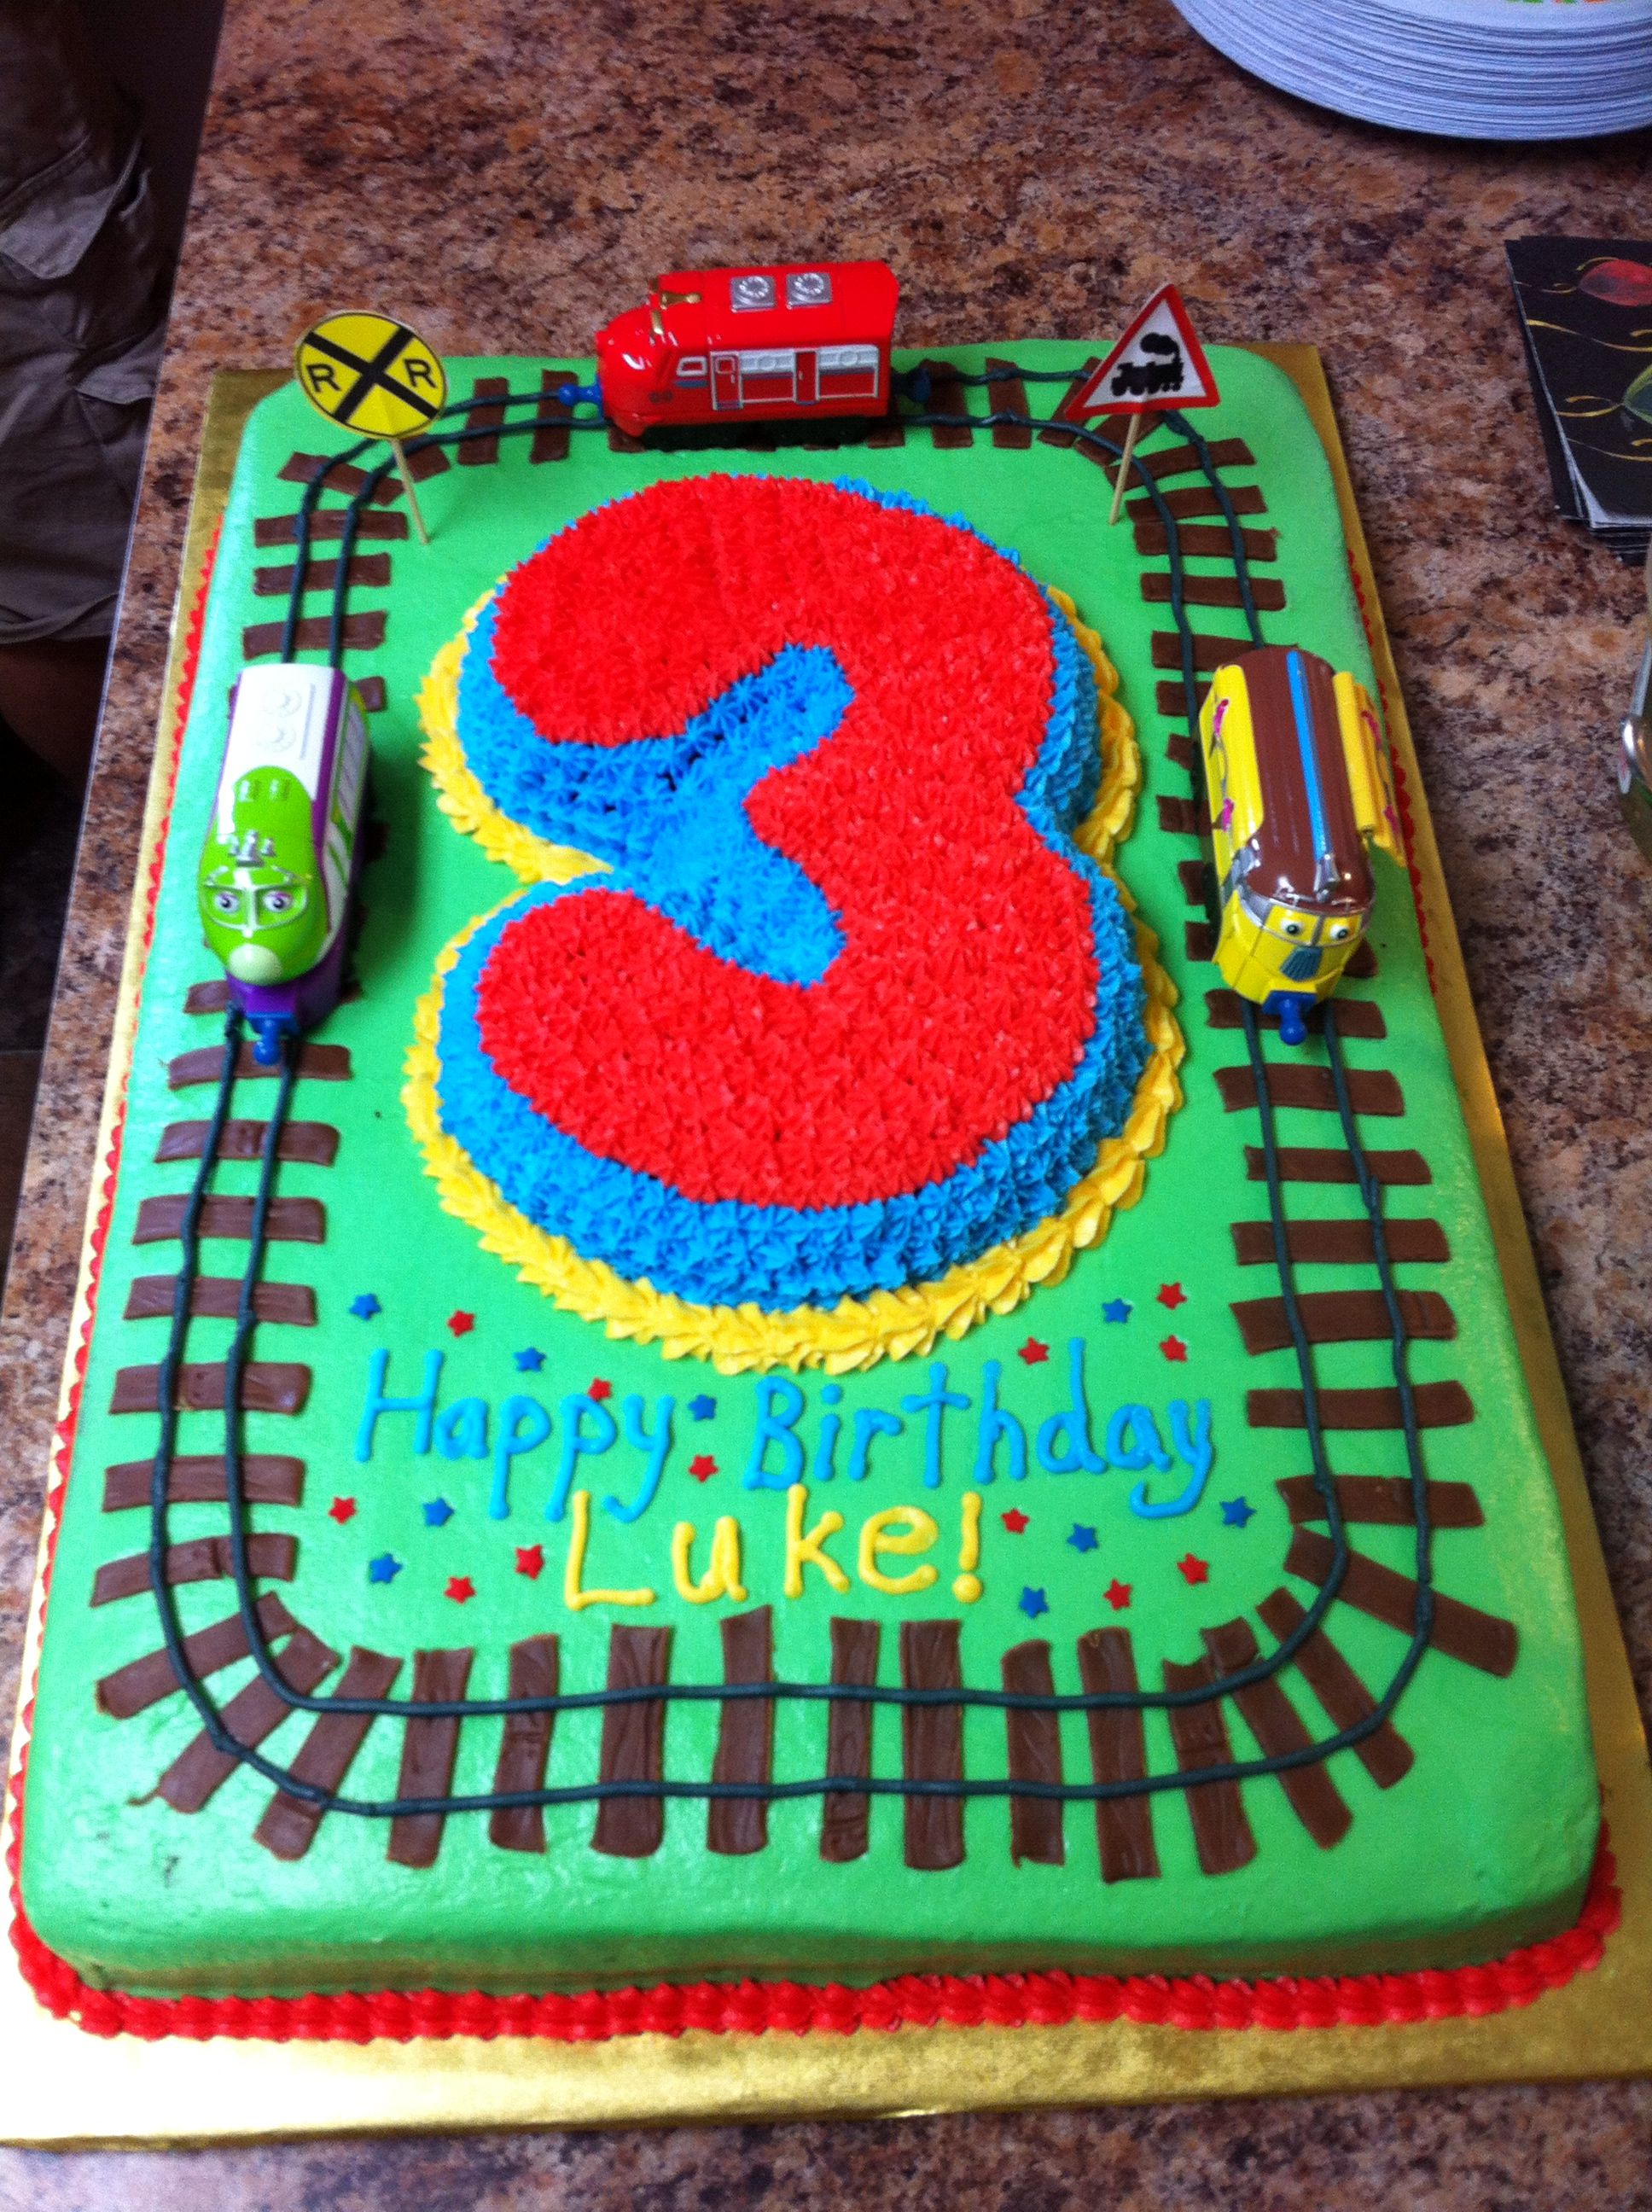 3 year old Chuggington cake Megan something similar to this for